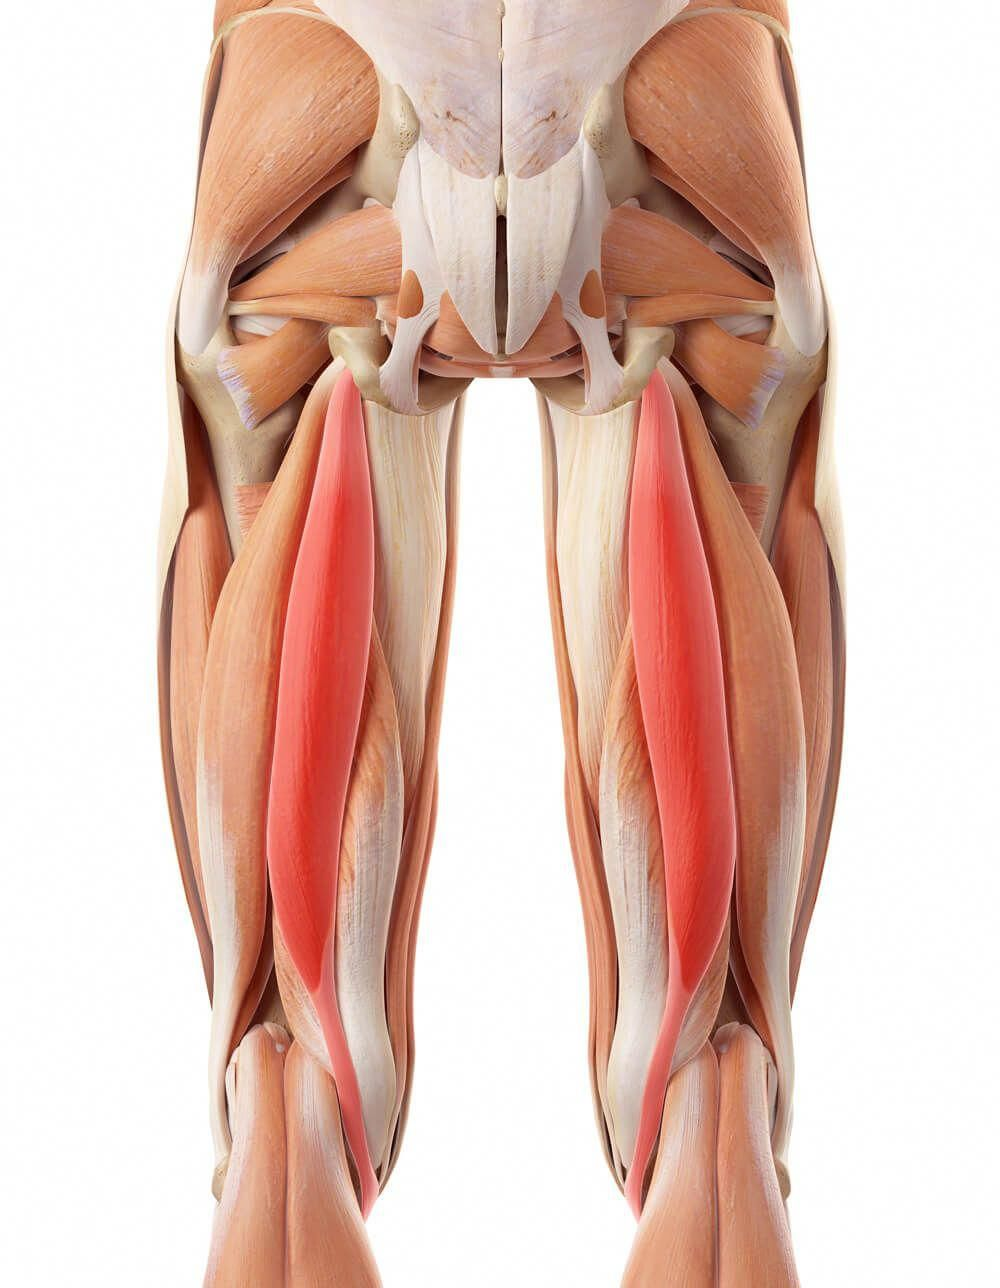 21+ Where are the hamstrings located on the body inspirations